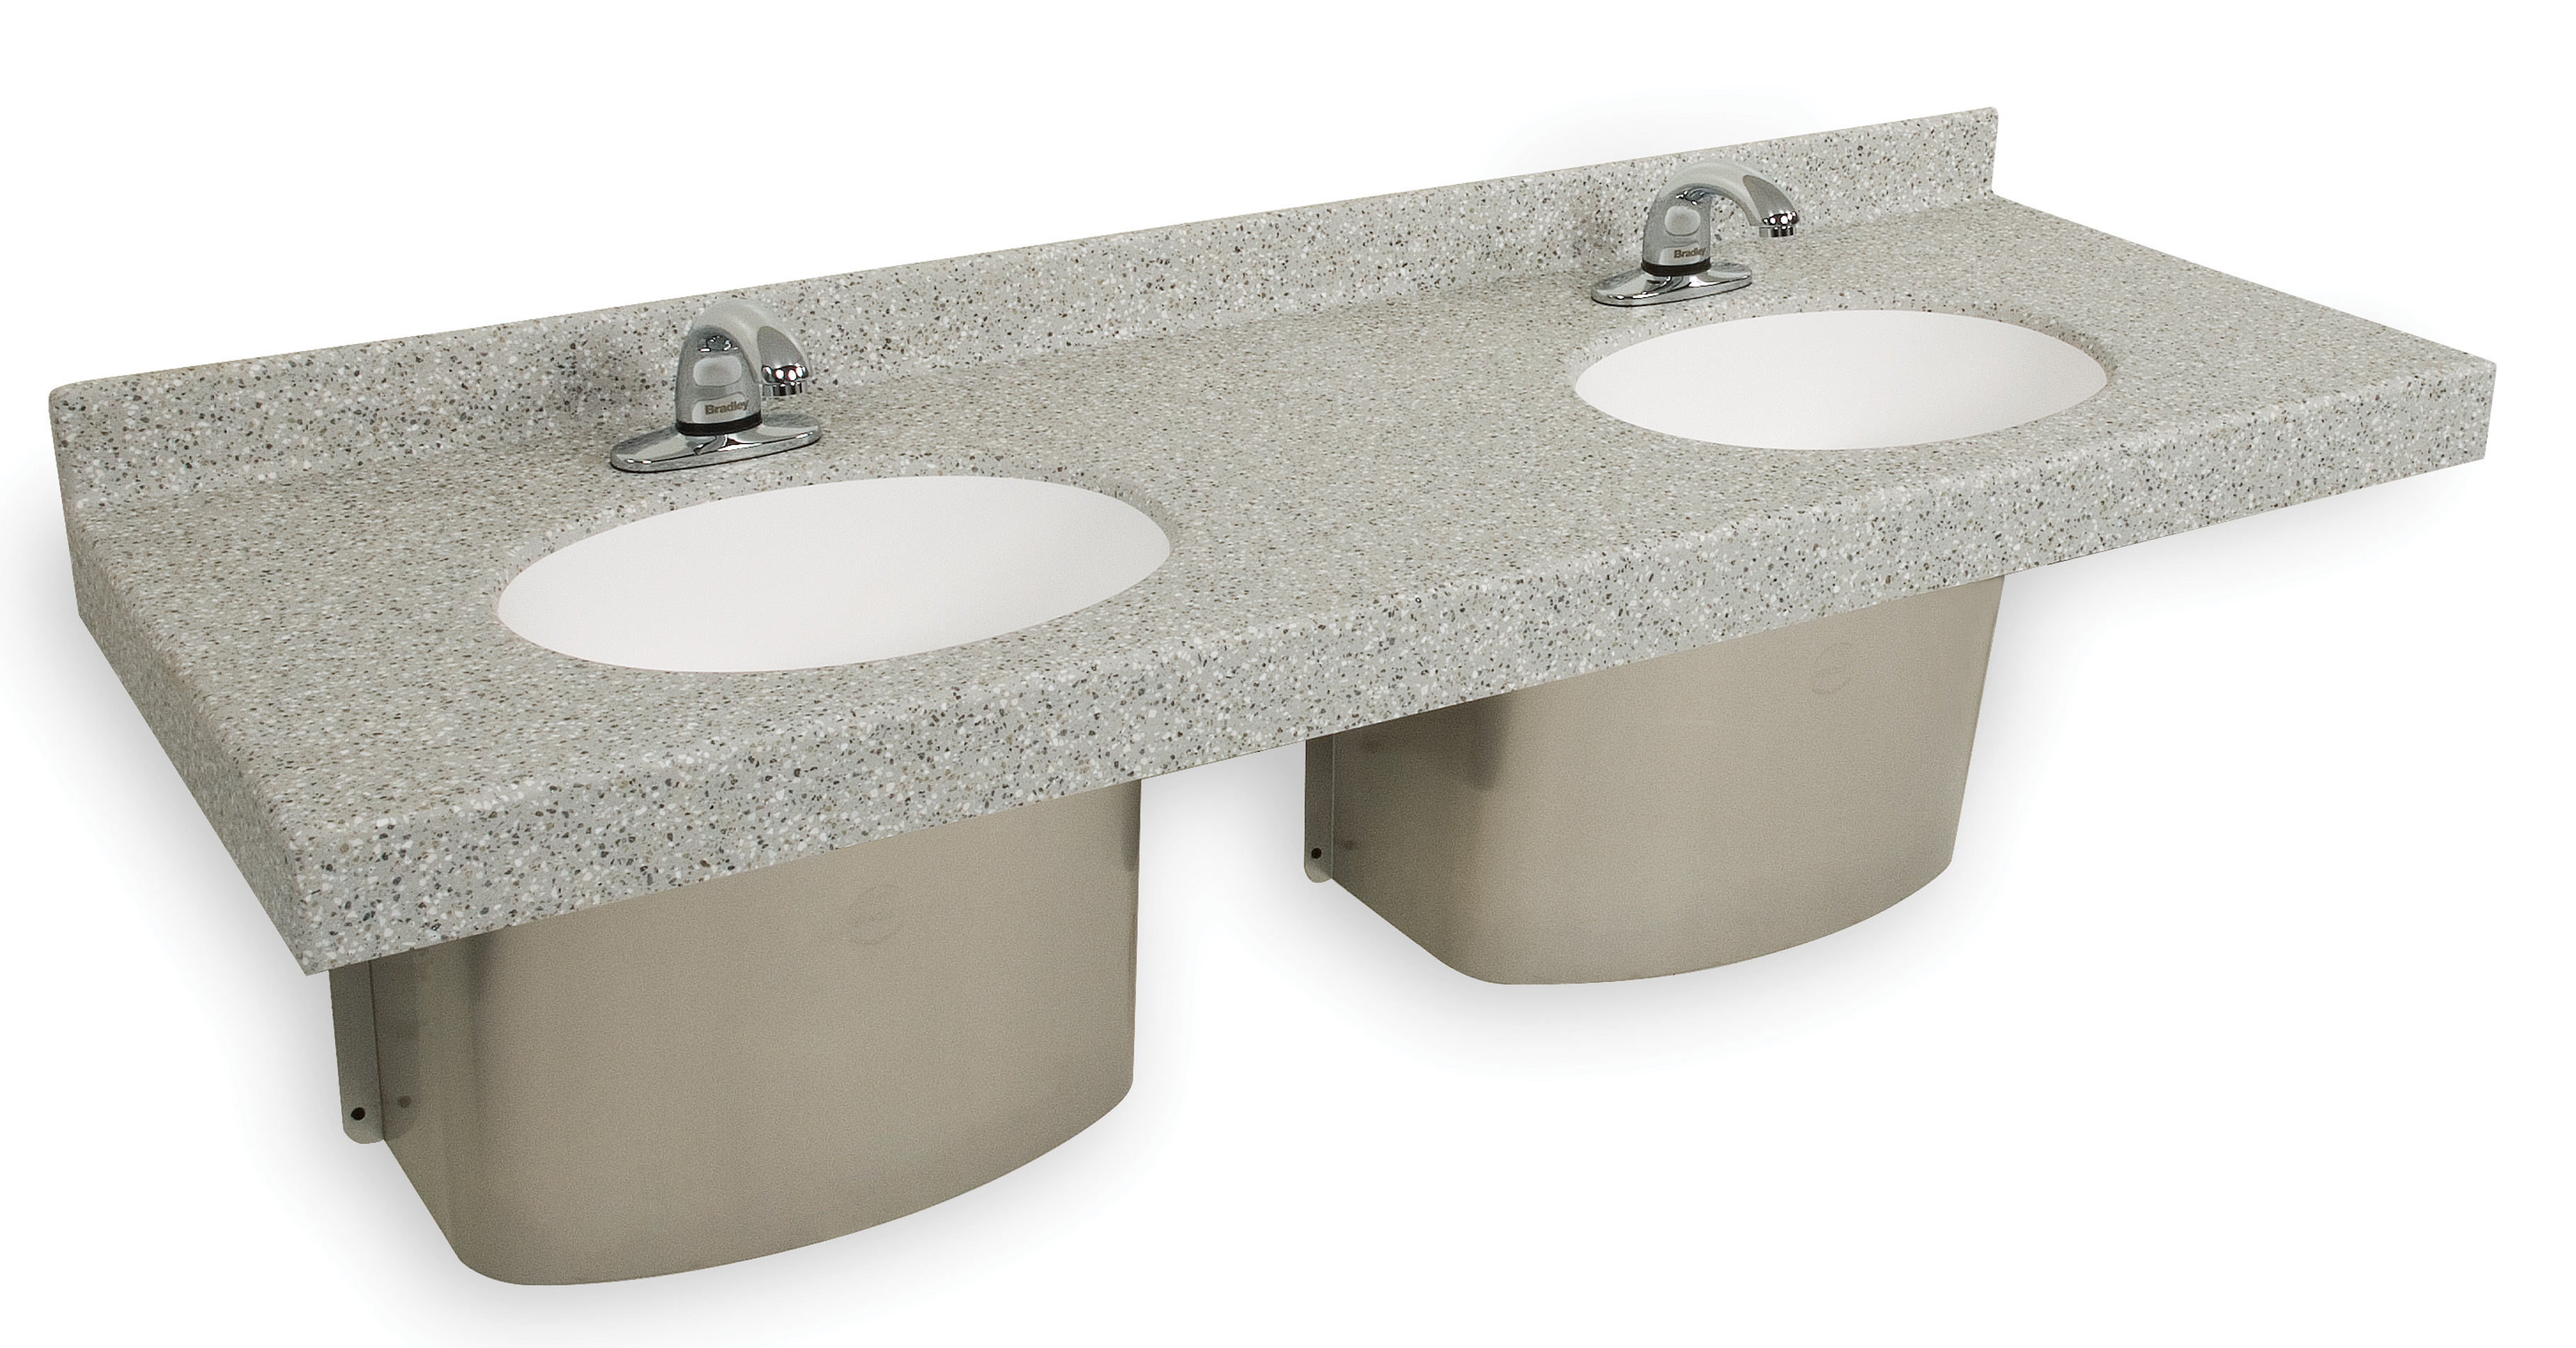 Omnideck With Oval Handwashing Basin Bradley Corporation